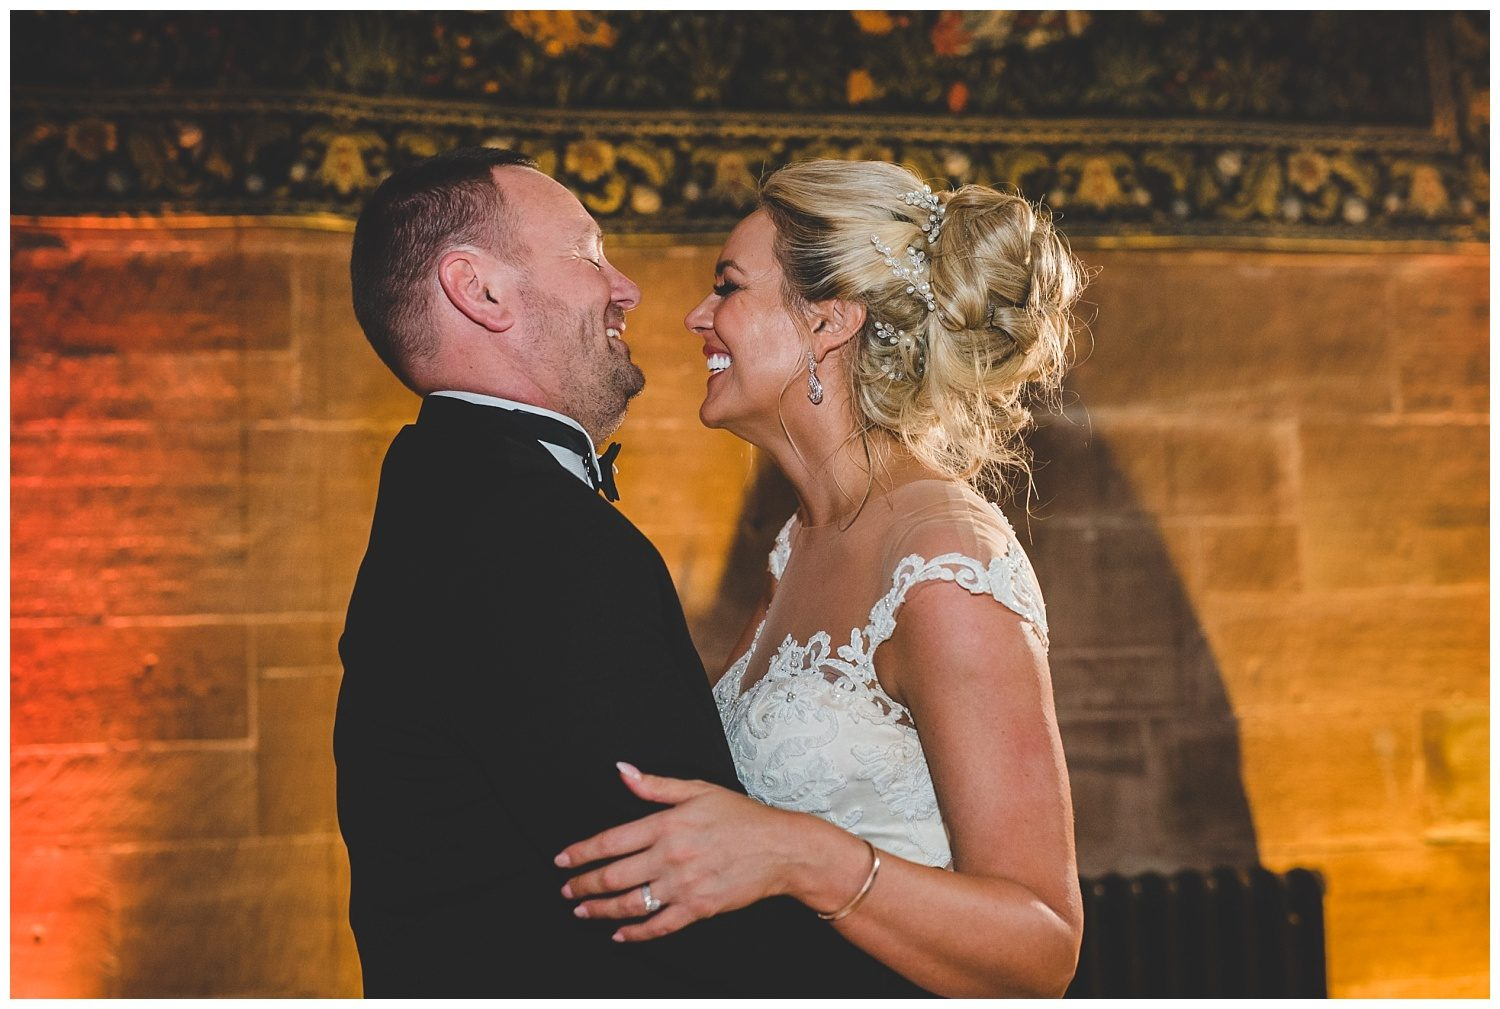 Bride and groom's first dance at Peckforton Castle wedding